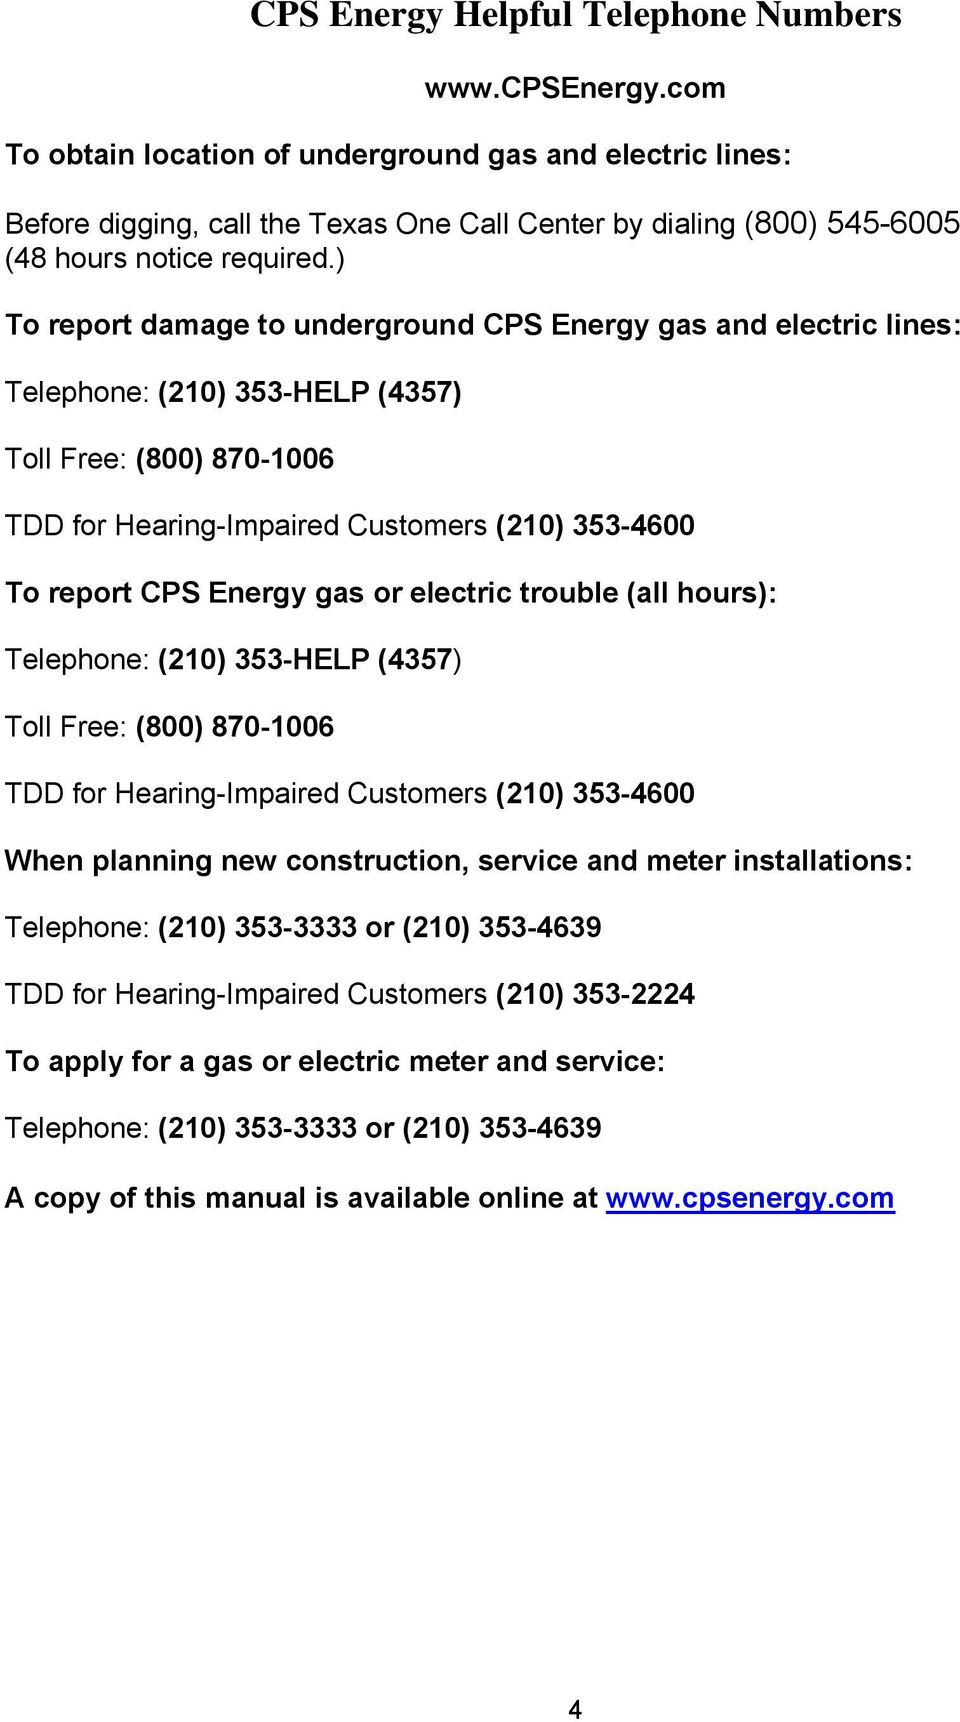 ) To report damage to underground CPS Energy gas and electric lines: Telephone: (210) 353-HELP (4357) Toll Free: (800) 870-1006 TDD for Hearing-Impaired Customers (210) 353-4600 To report CPS Energy